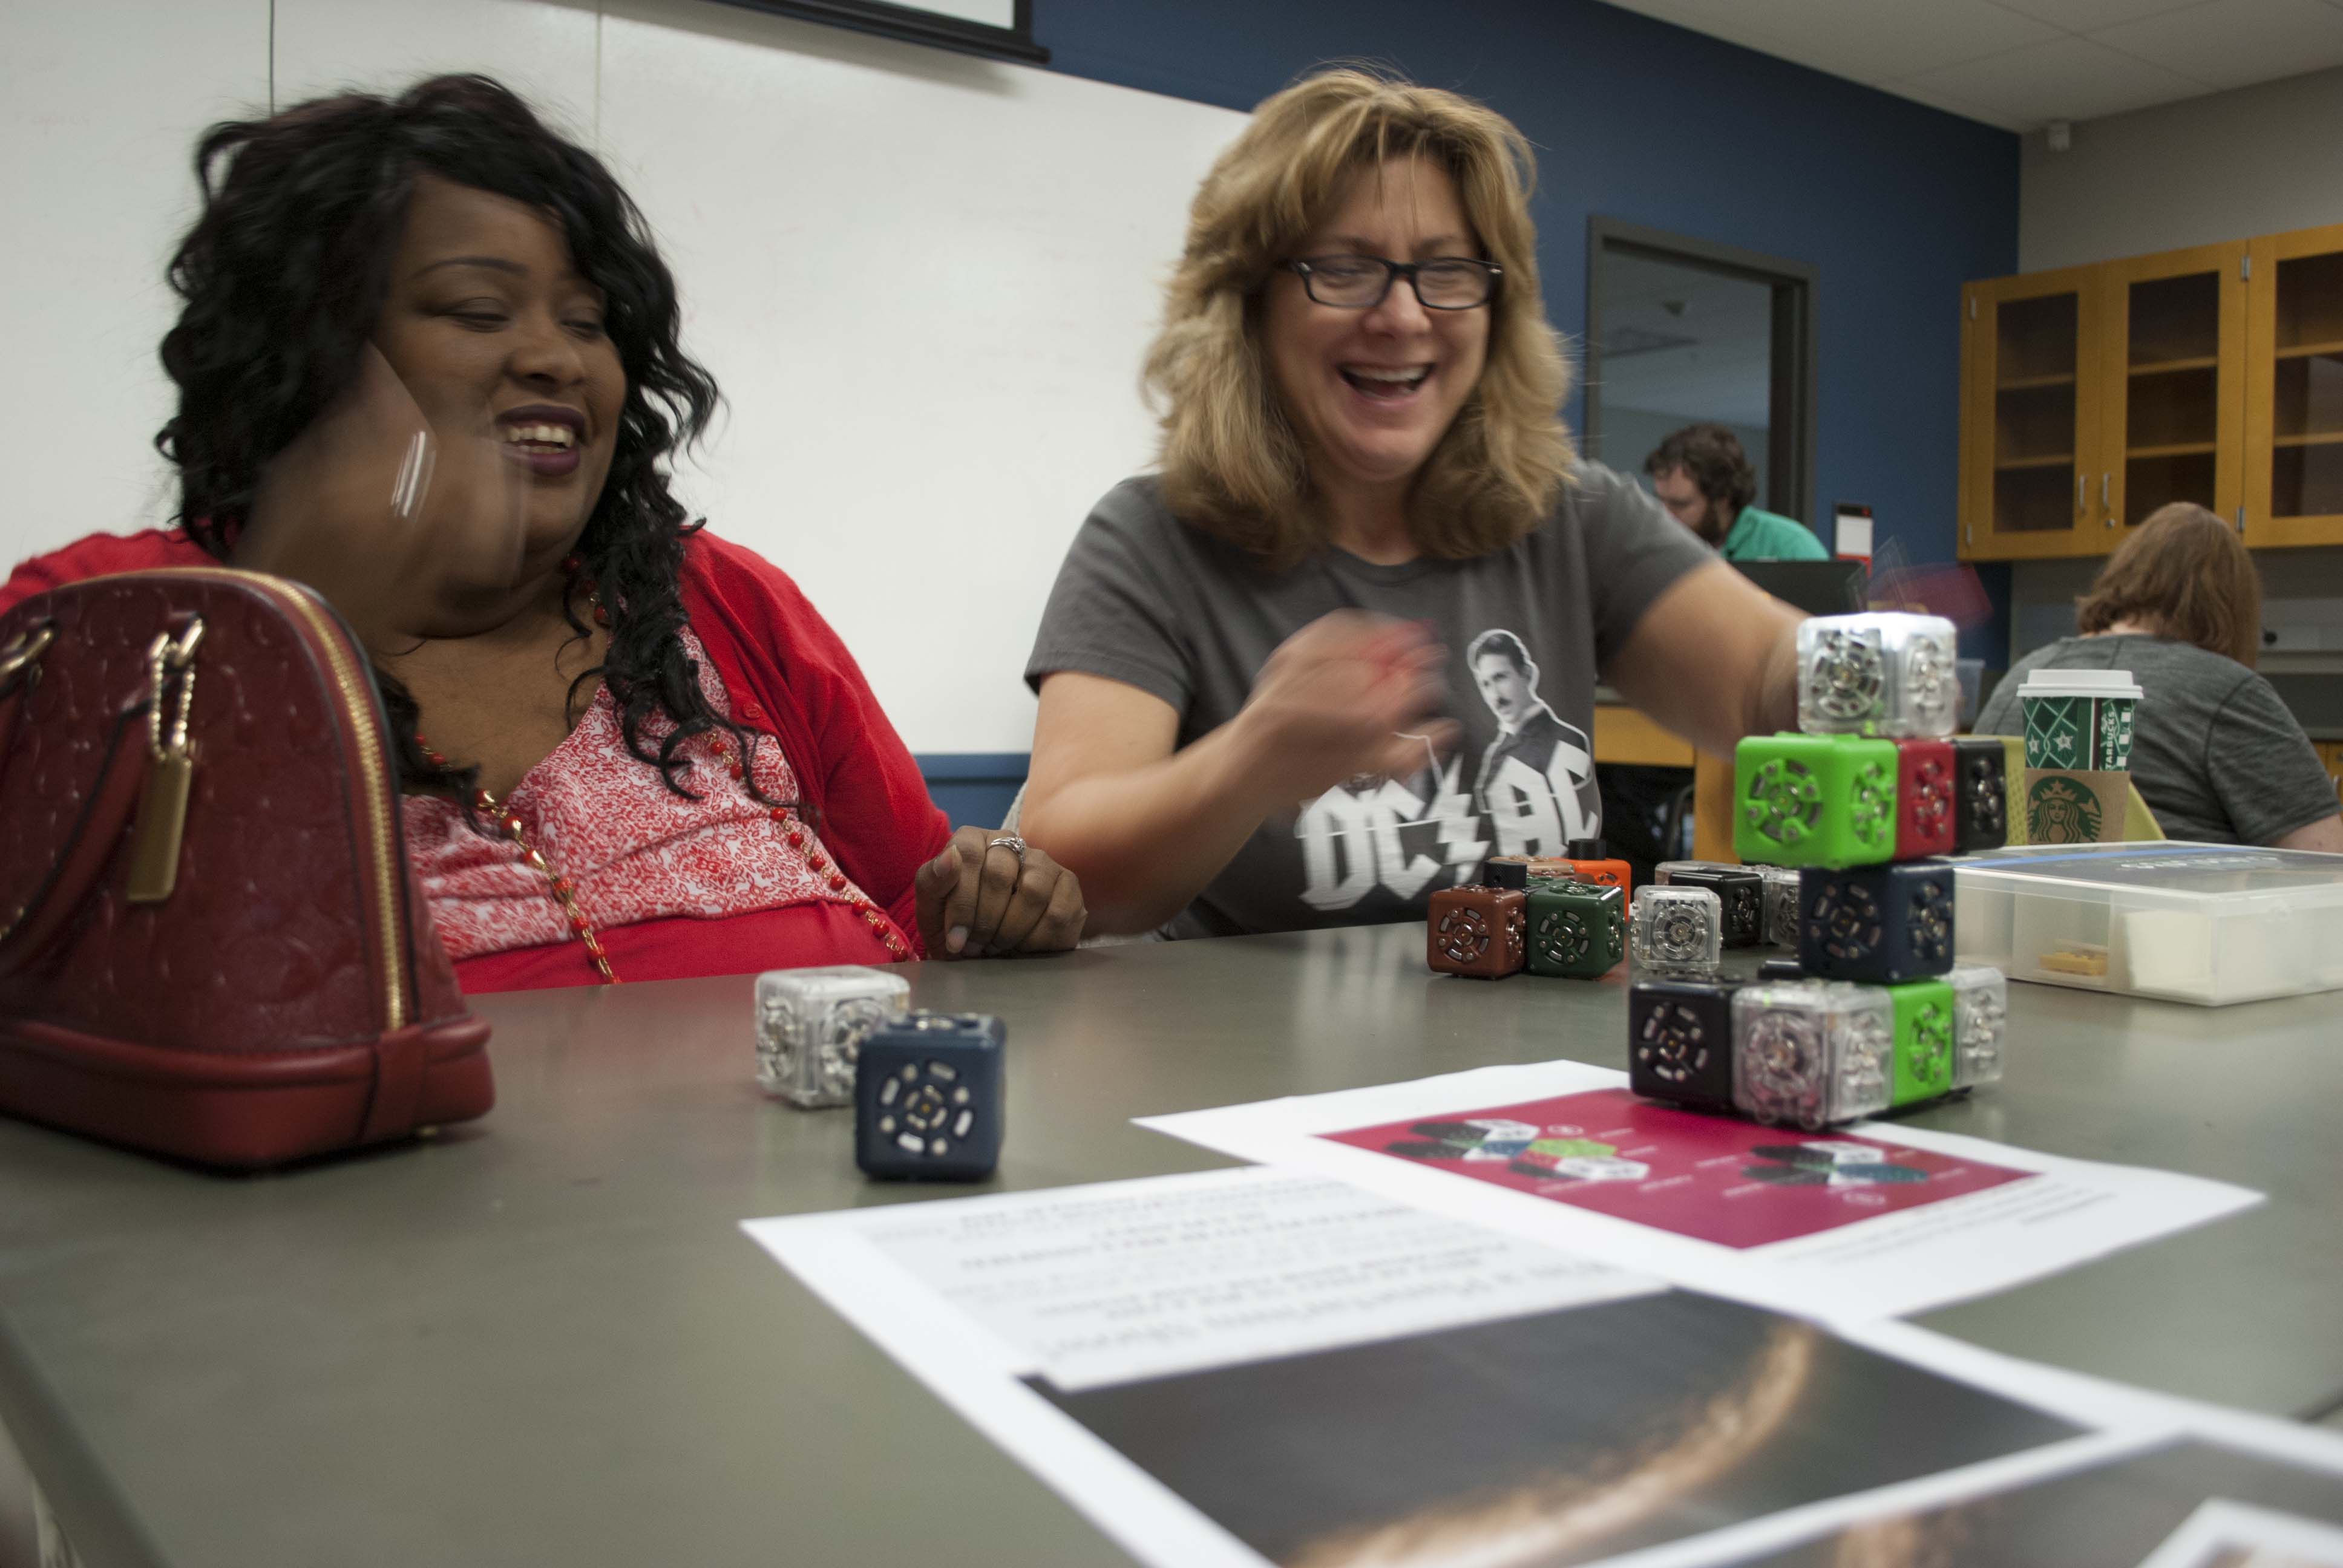 Collinsville teachers experimenting with Cubelets.